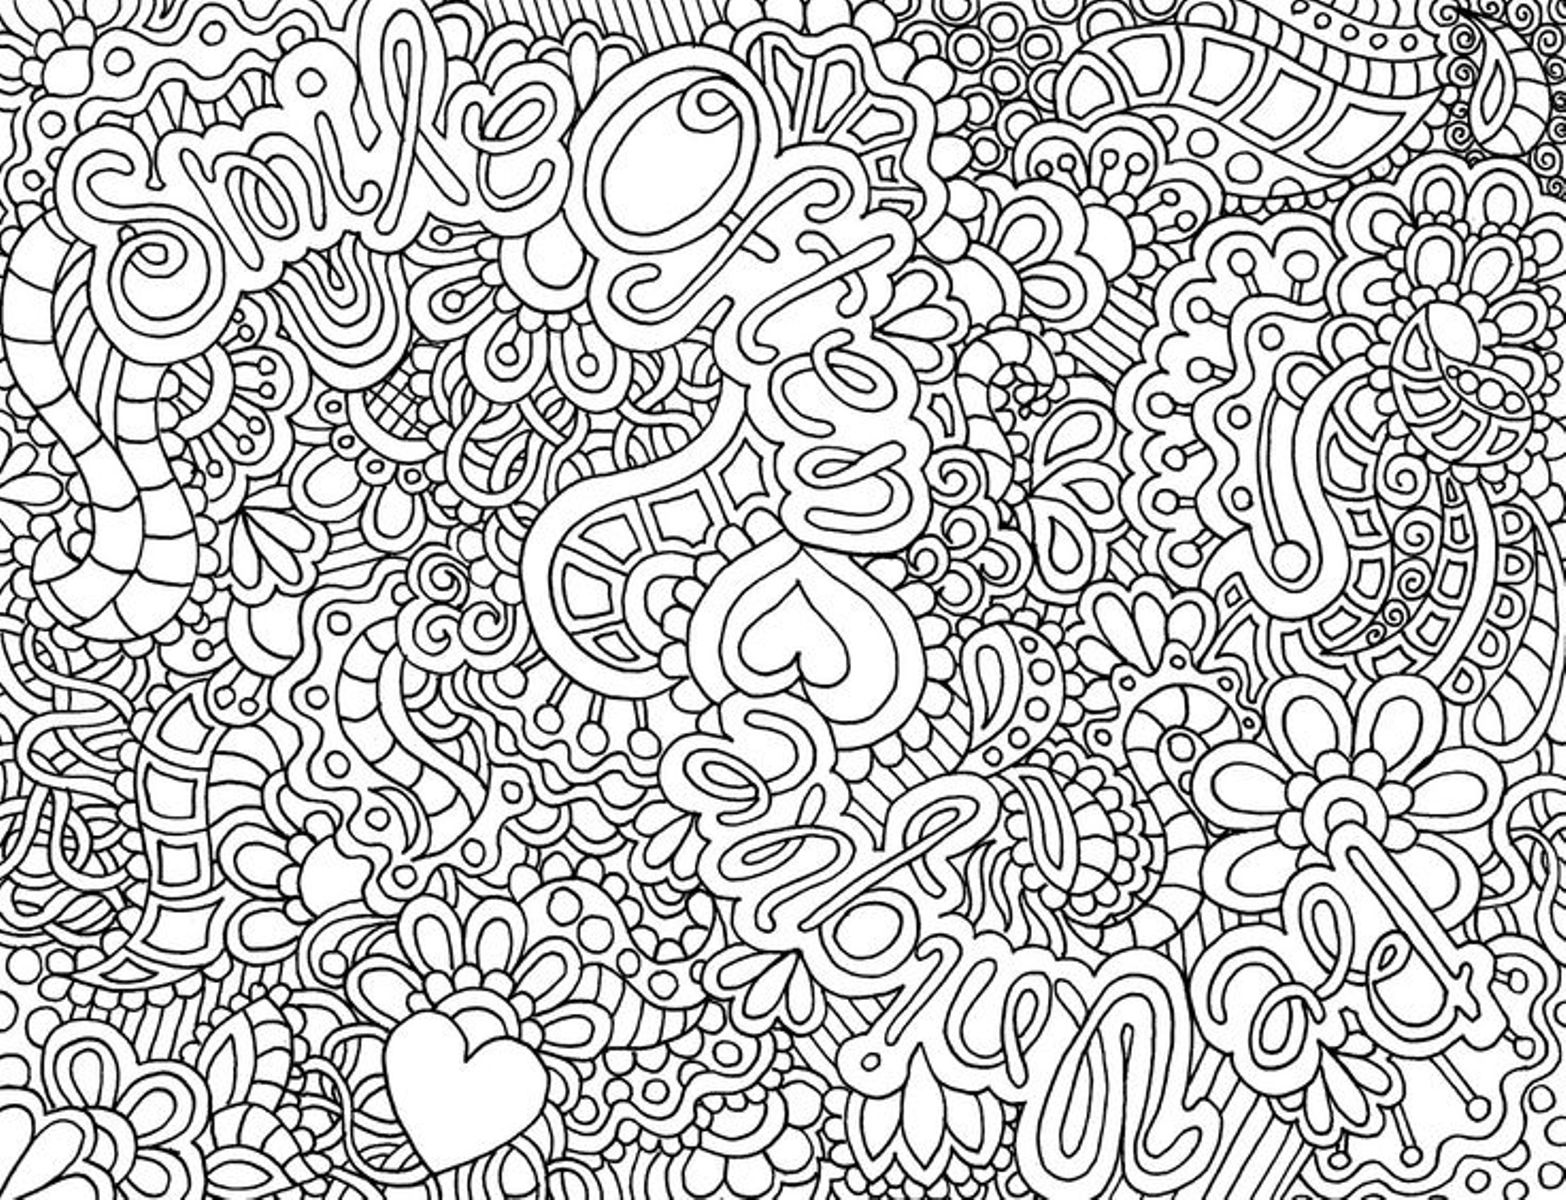 detailed coloring pages - Printable Difficult Coloring Pages